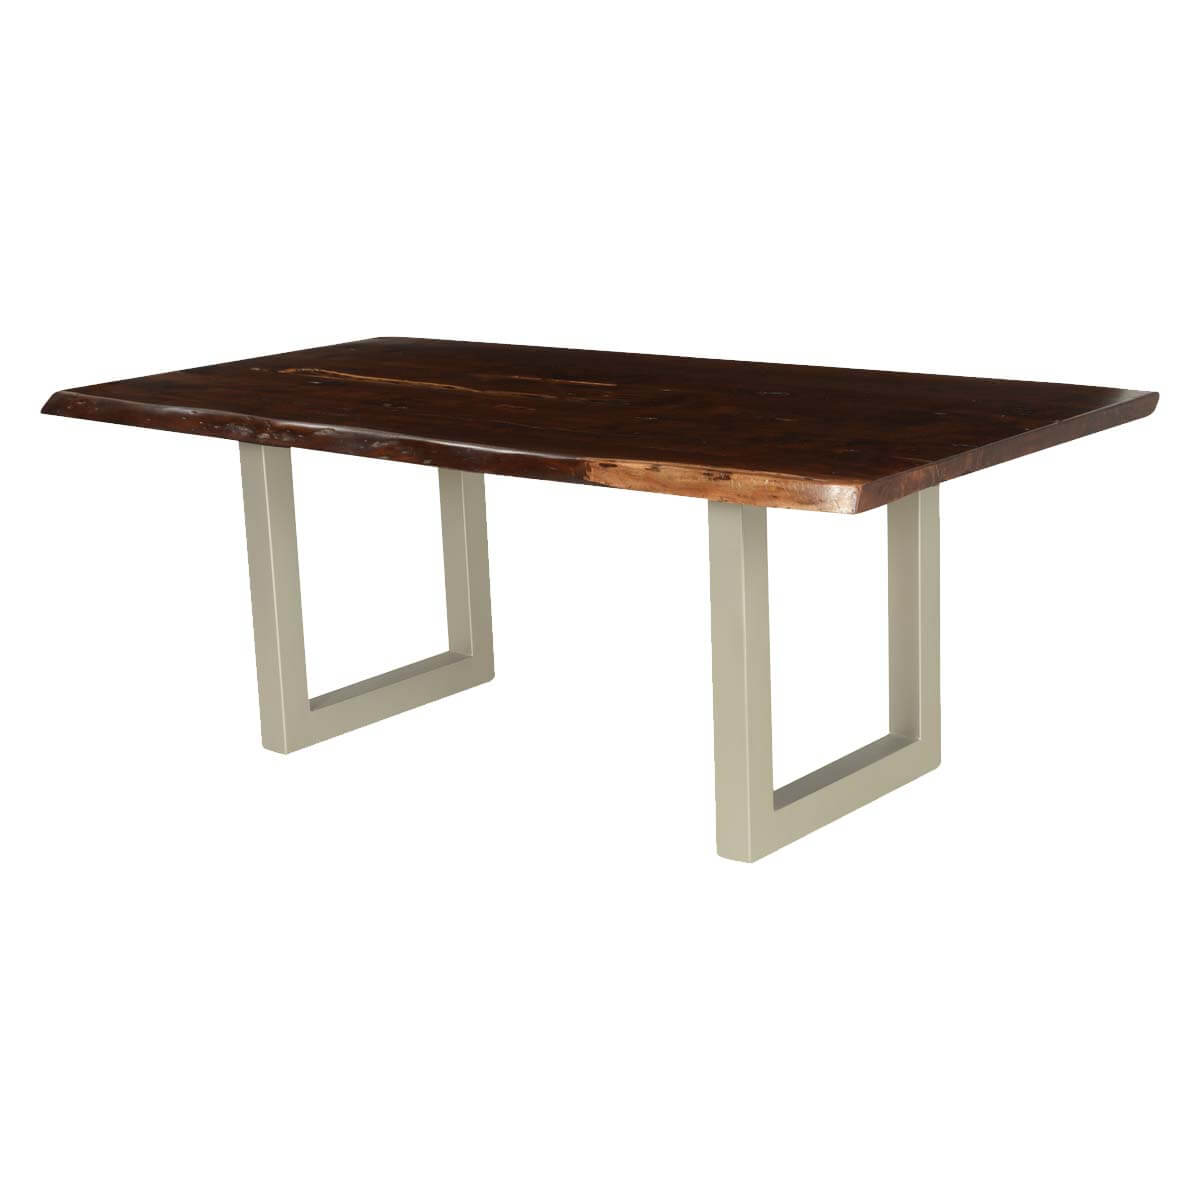 Wood iron dining table manhattan wood iron dining table for Table queens acacia